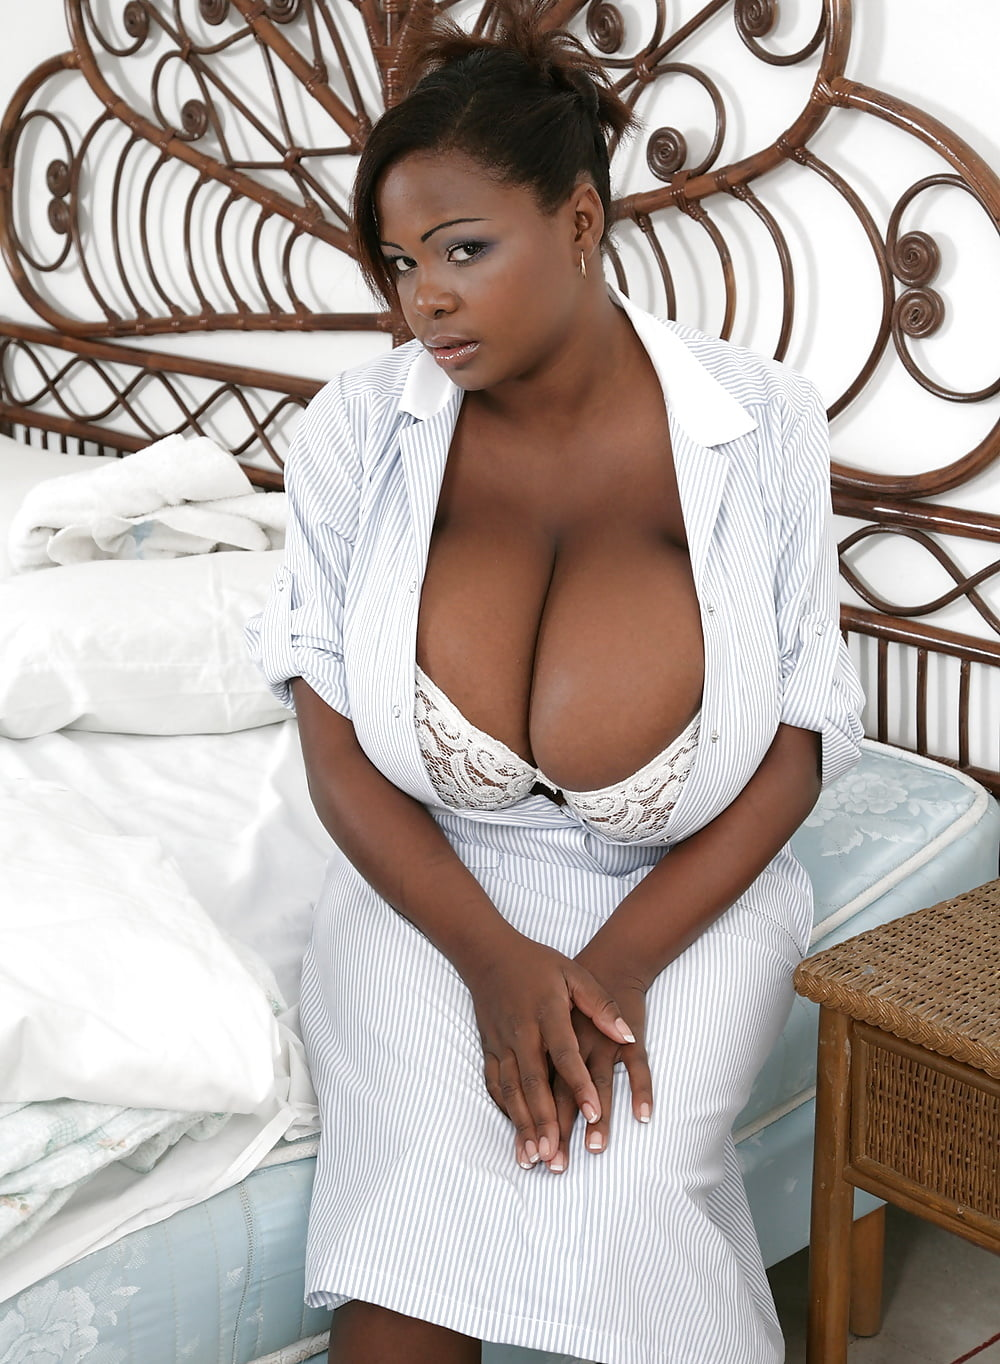 Miosotis black ebony, youngest cg model girls